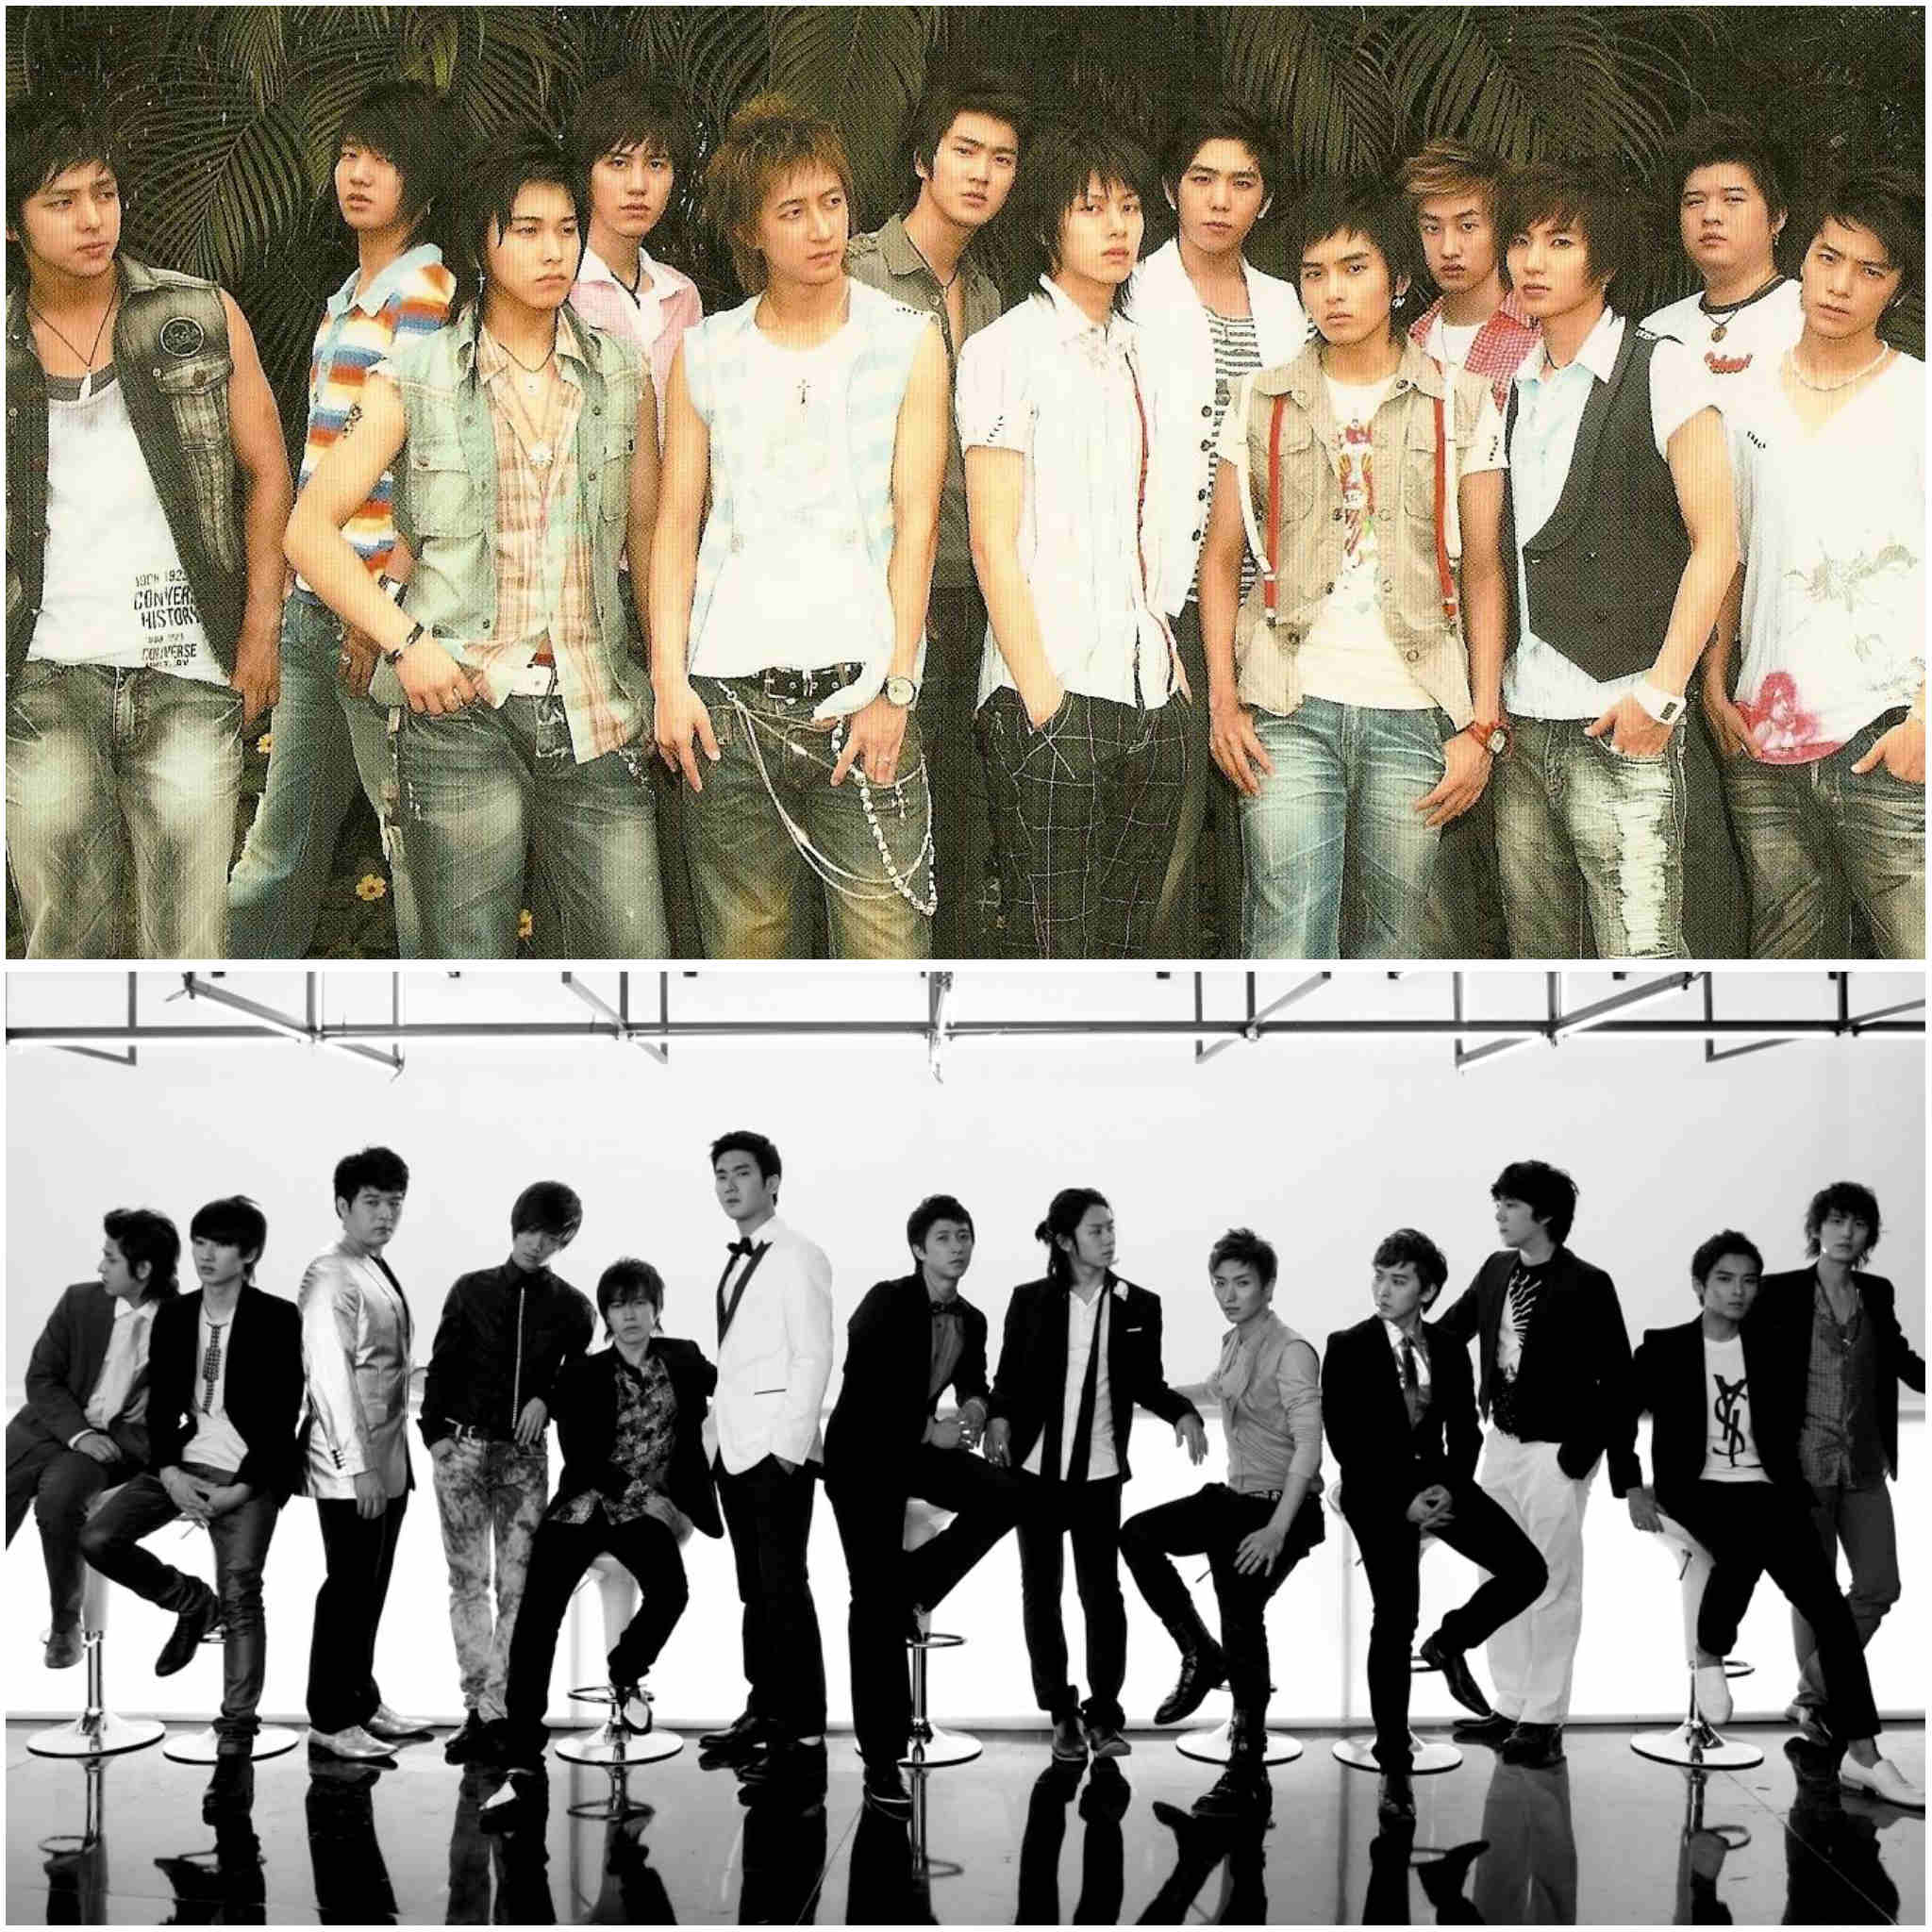 2nd generation K-pop groups - Super Junior